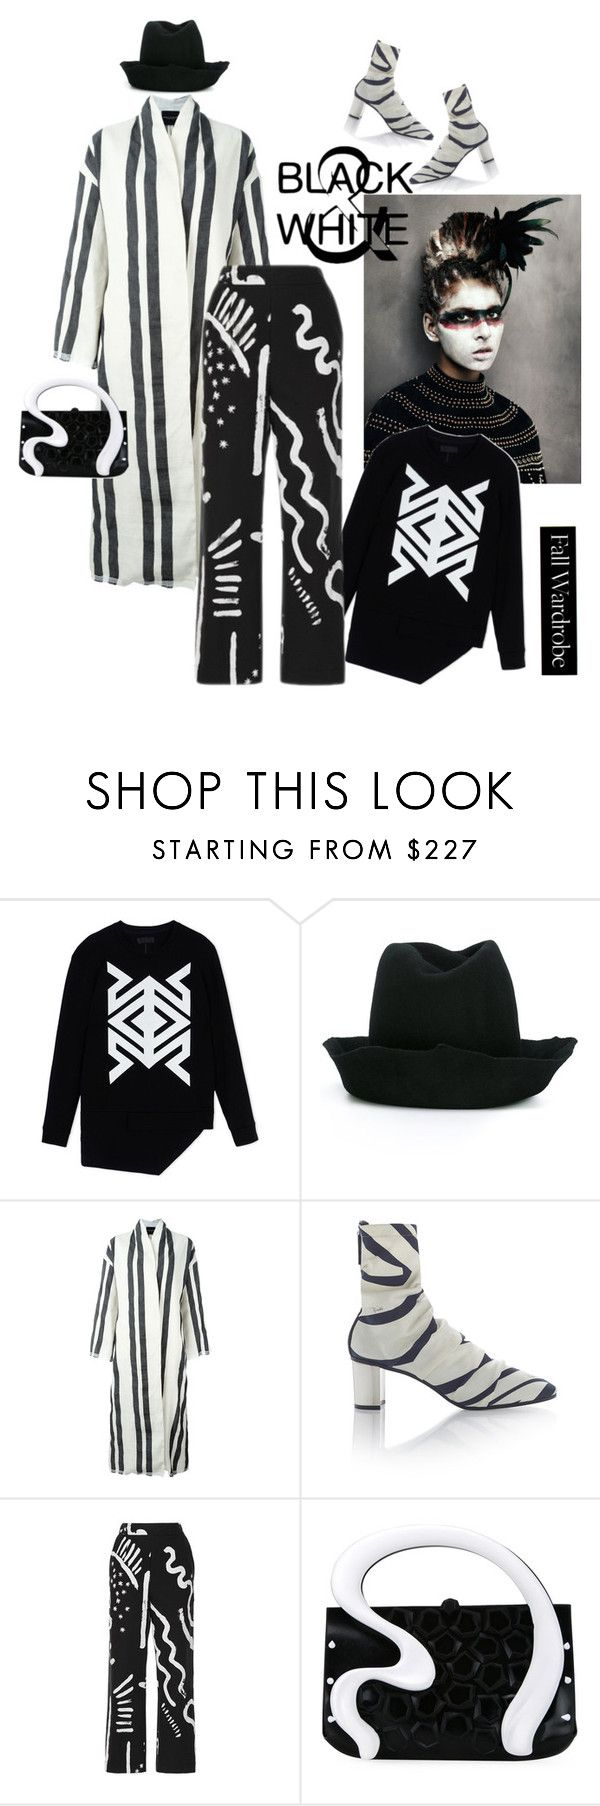 """""""Black and White"""" by naturalbornstyler ❤ liked on Polyvore featuring D.GNAK by KANG.D, REINHARD PLANK, Erika Cavallini Semi-Couture, Emilio Pucci, Isa Arfen and Gabriella Ingram"""